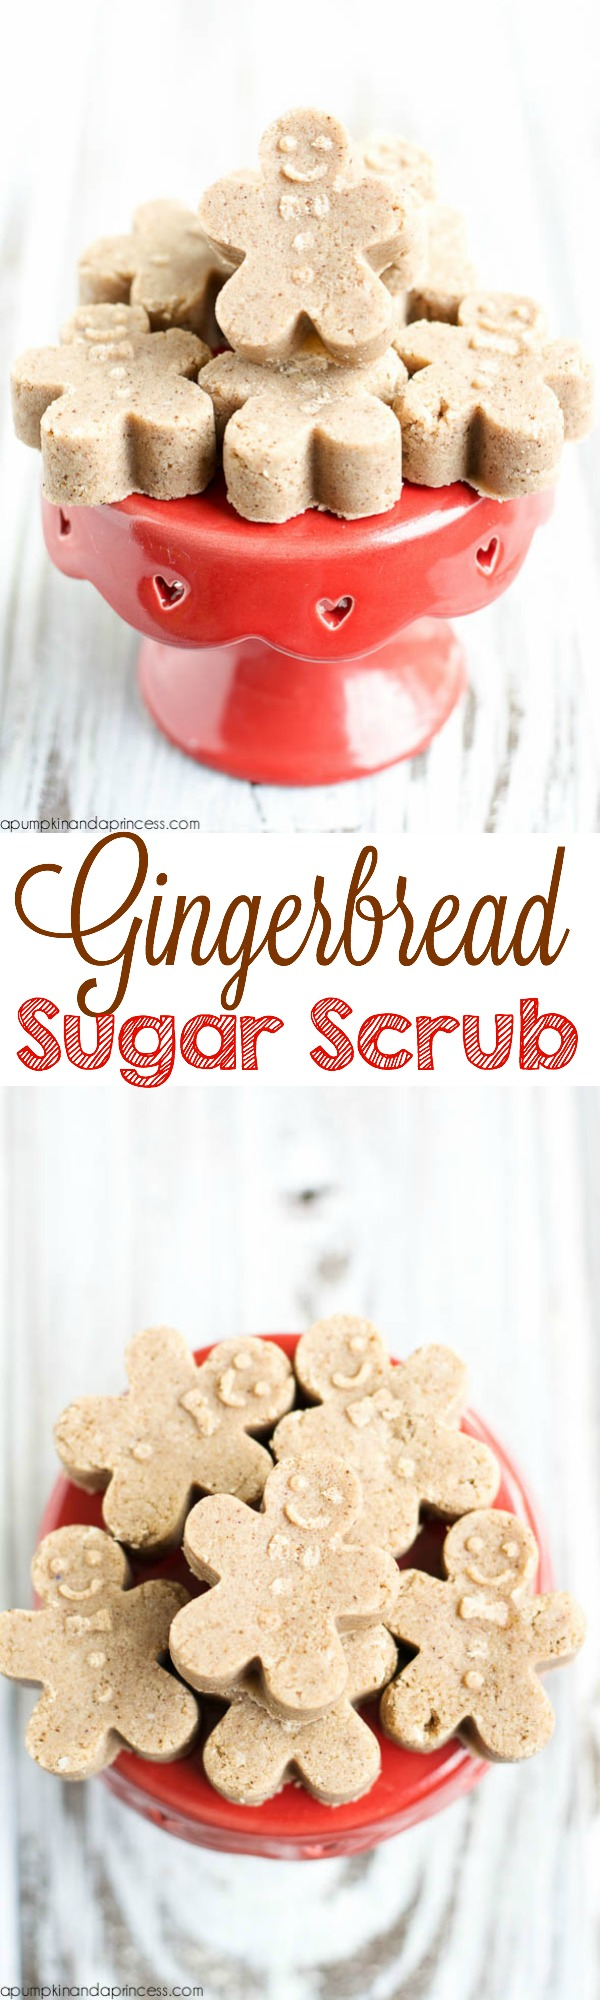 Gingerbread man sugar scrub tutorial